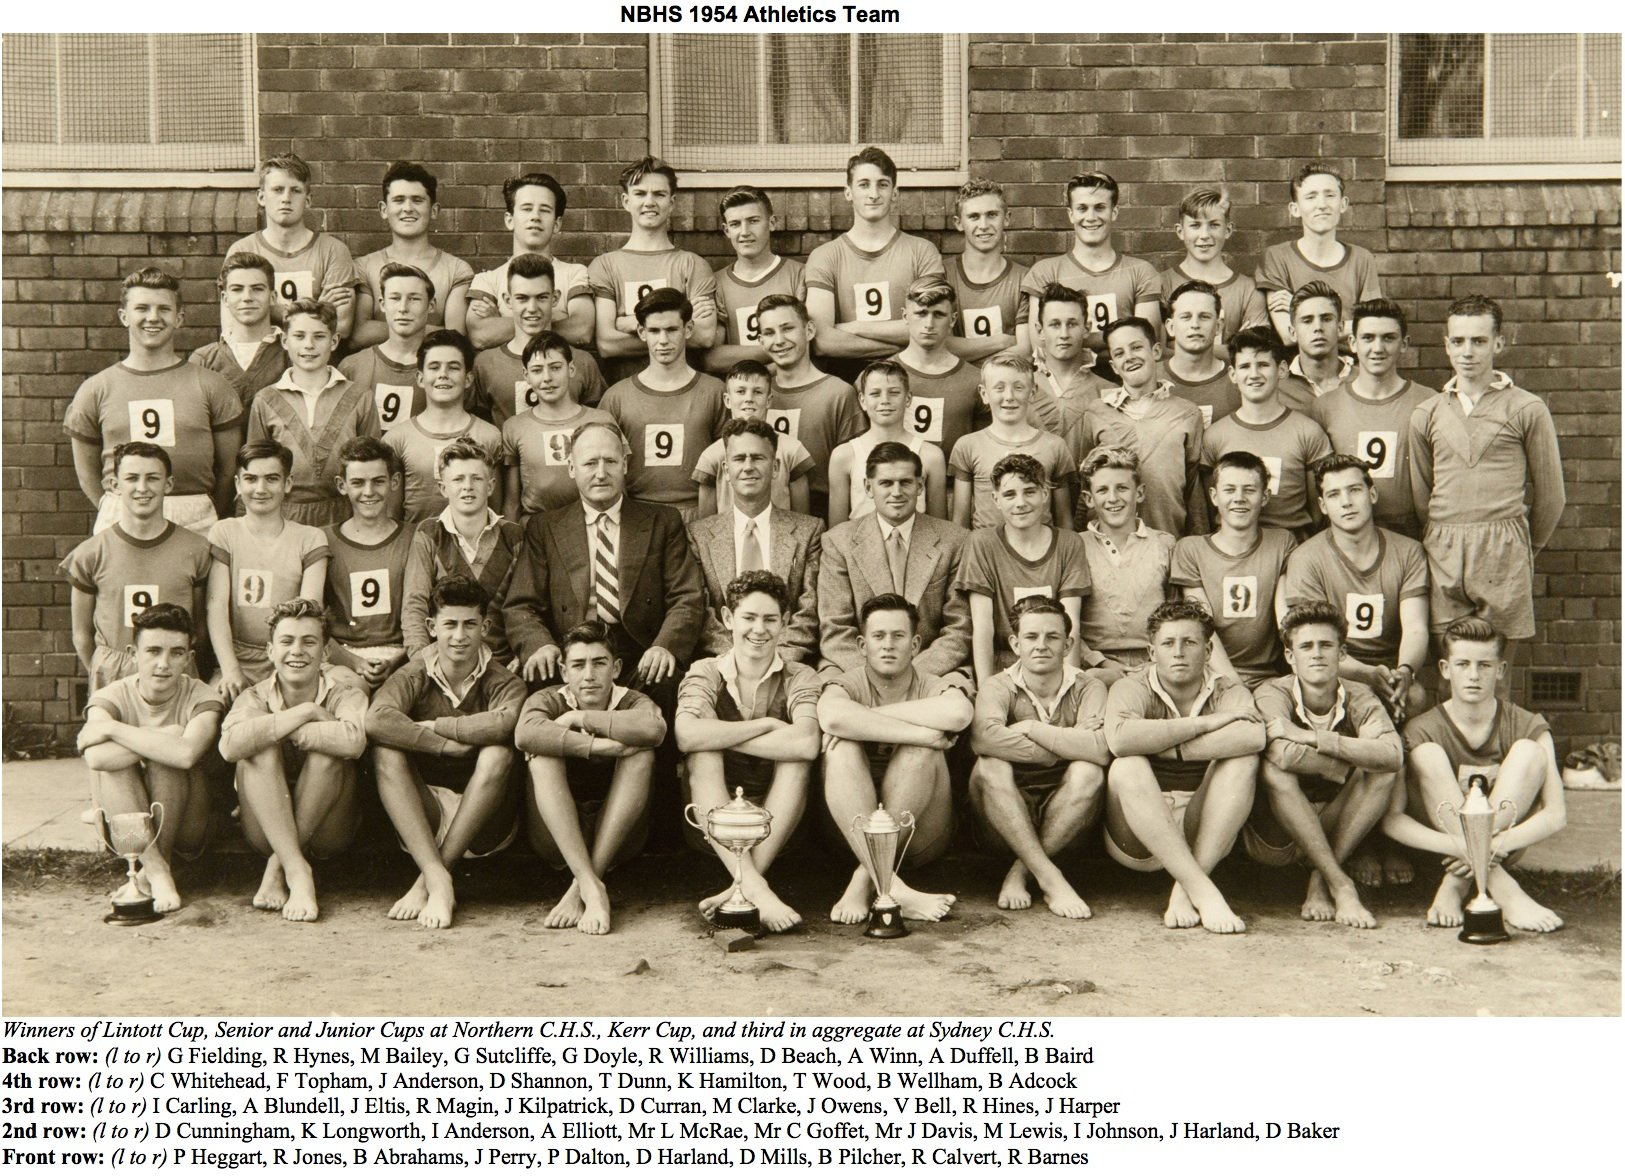 1954 Athletics